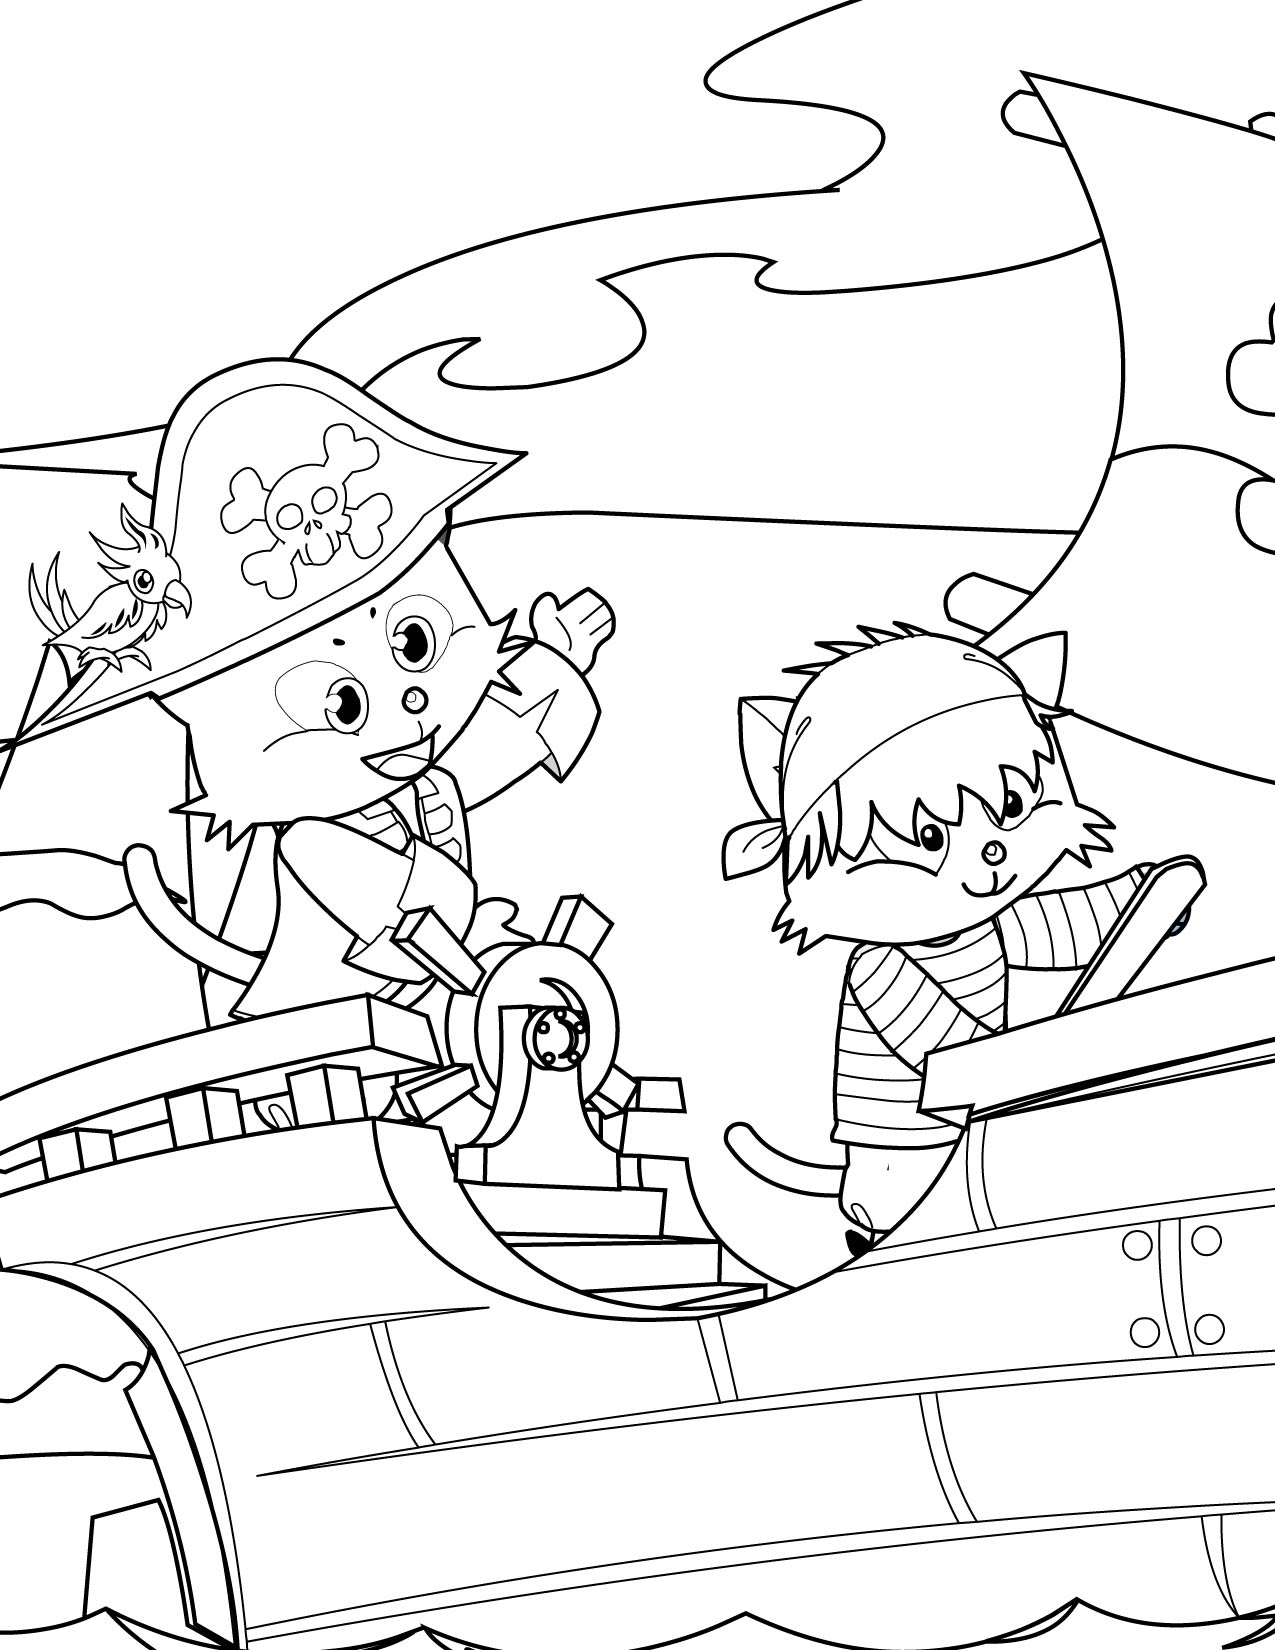 Pirate Coloring Page  Handipoints